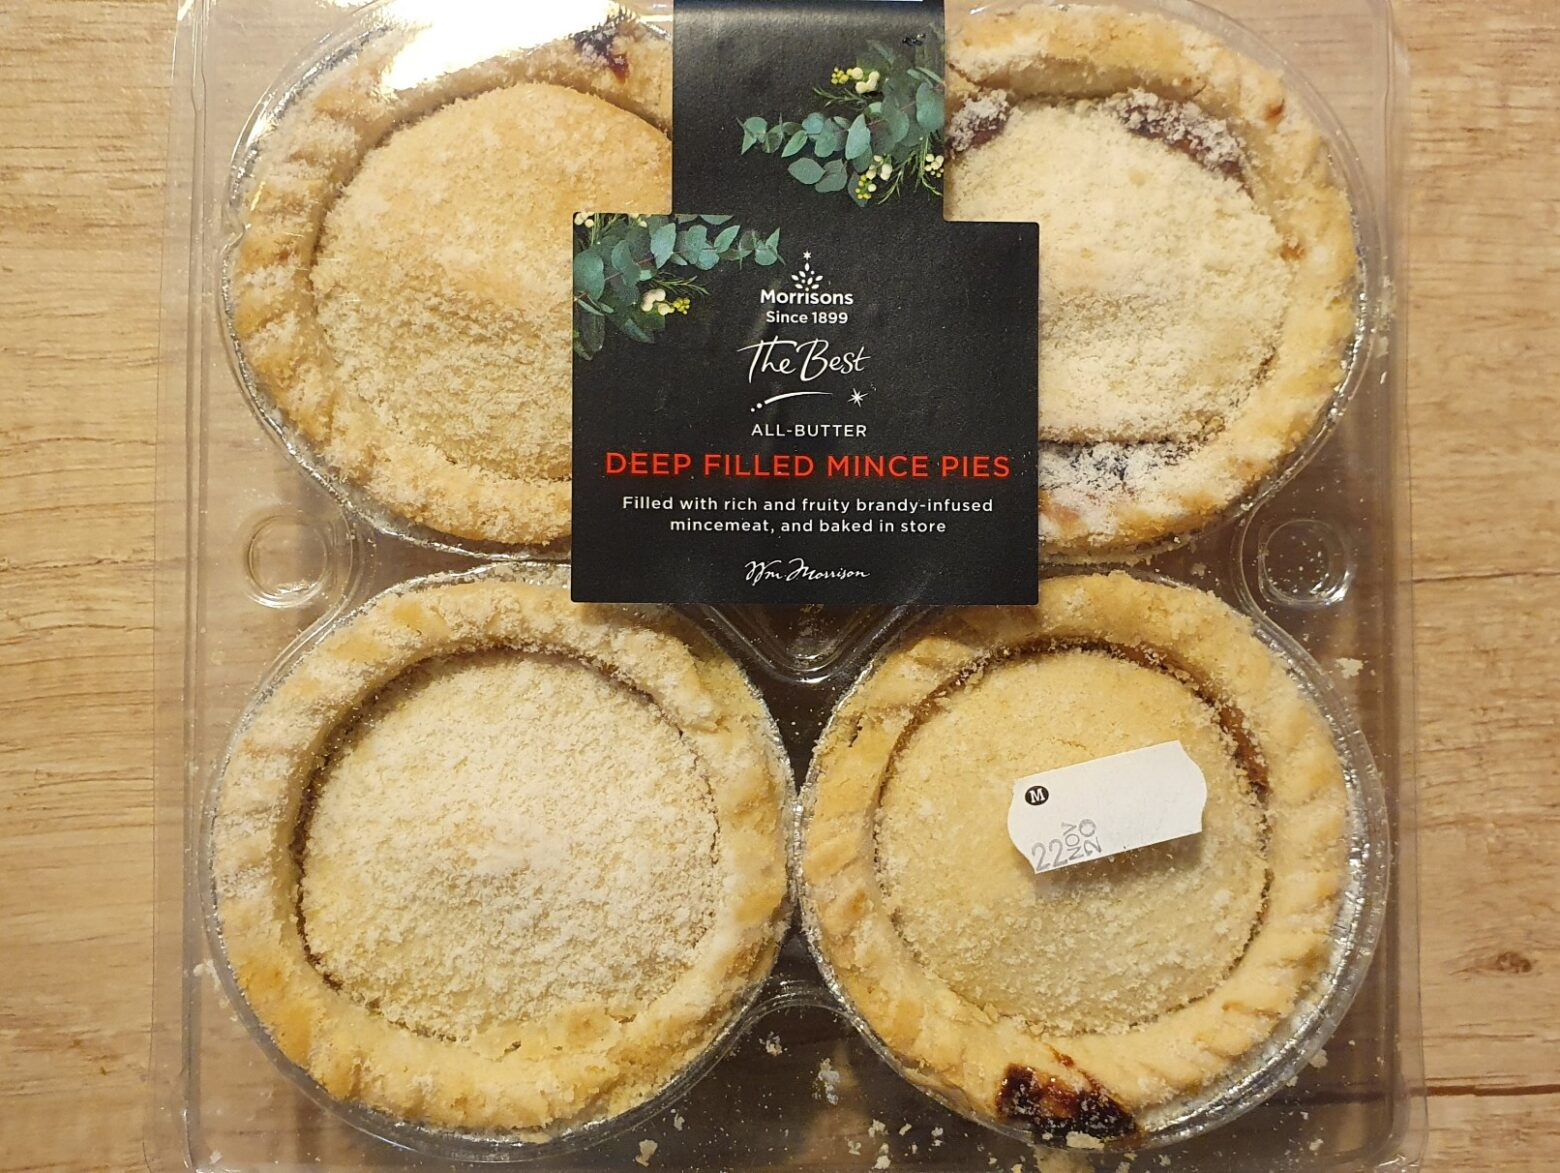 Morrisons 'The Best' Deep Filled All Butter Mince Pie Review 2020